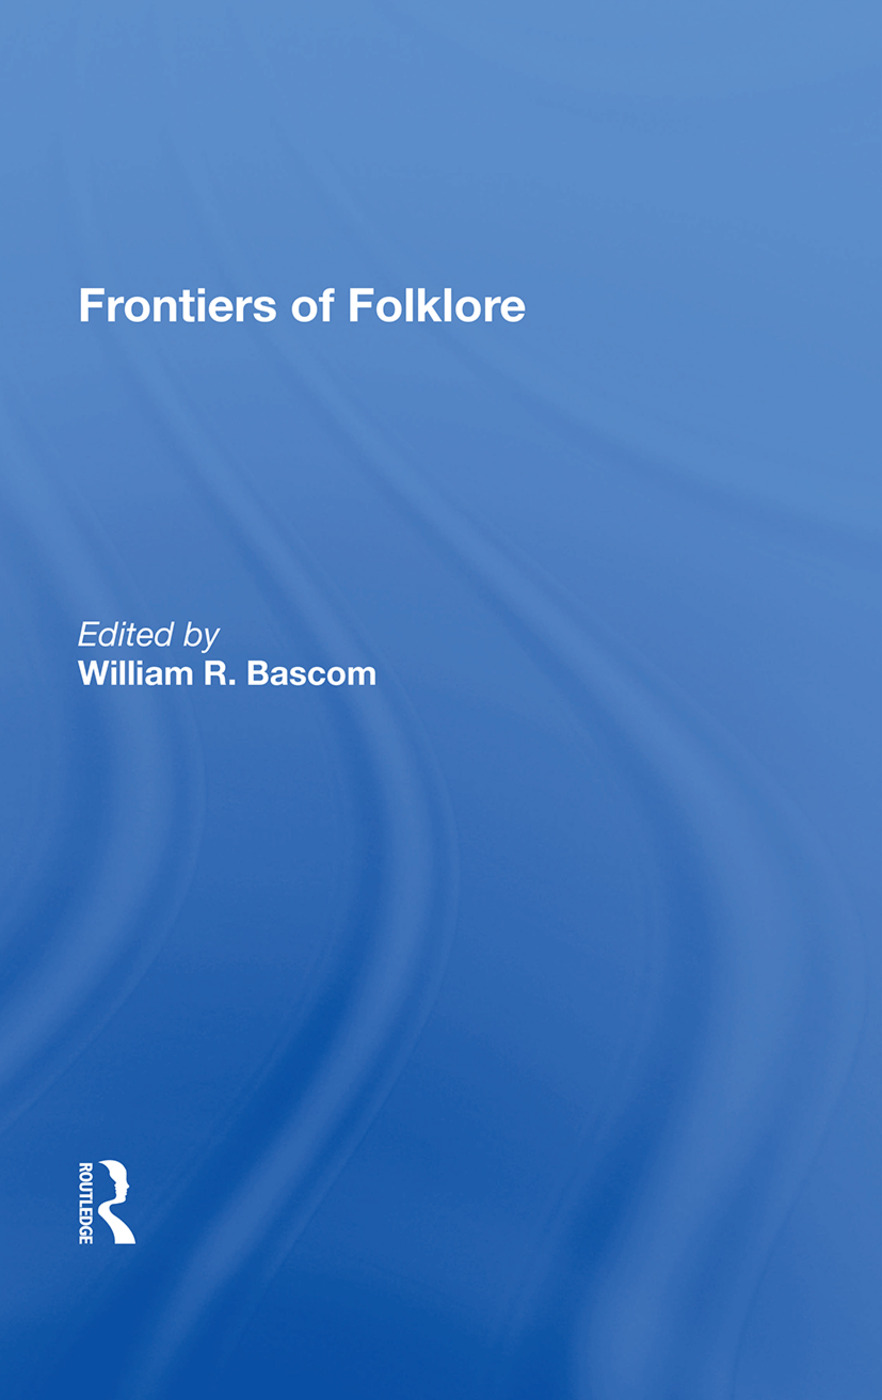 Frontiers of Folklore